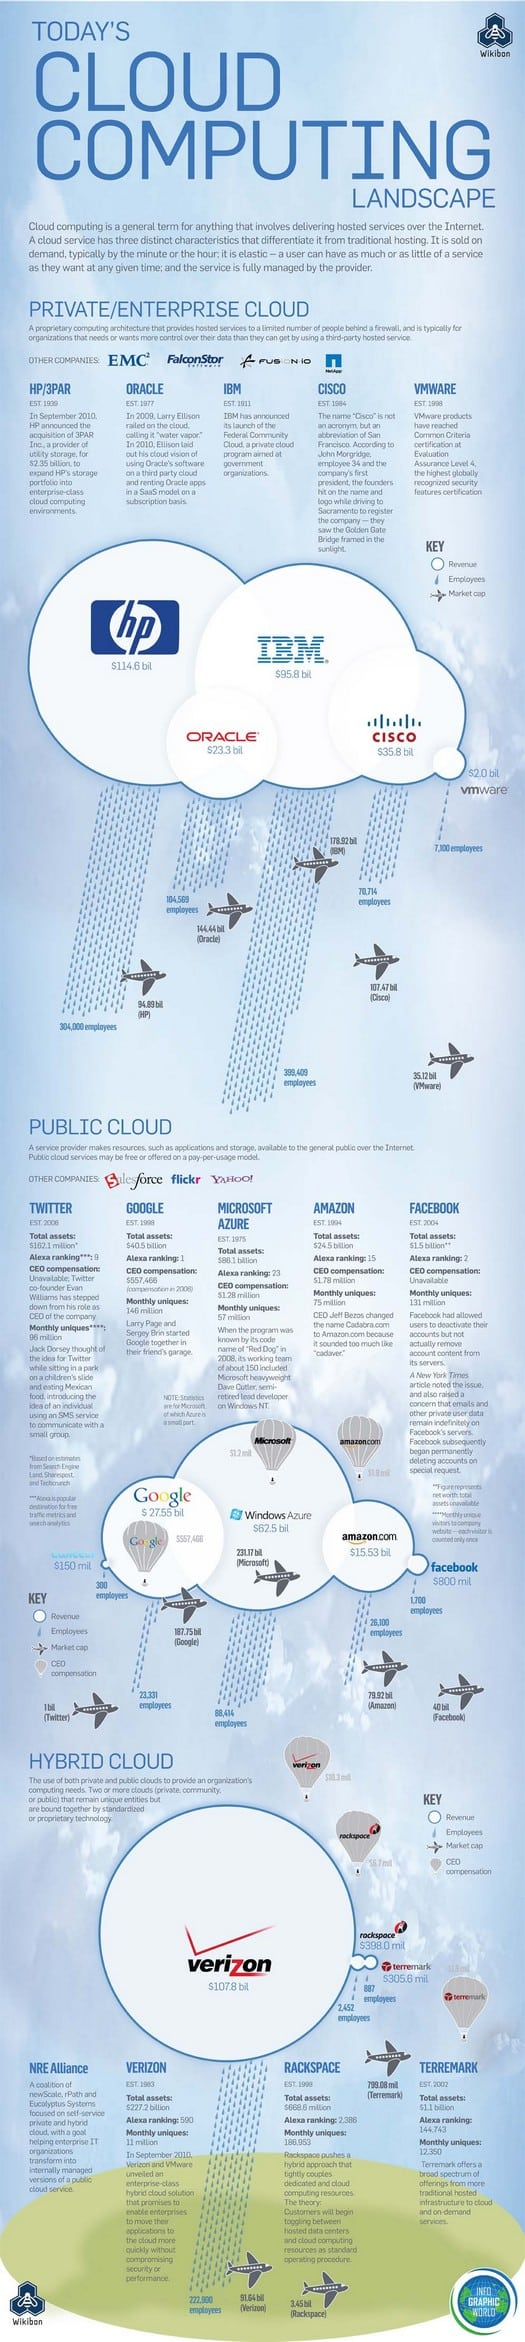 cloud computing landscape